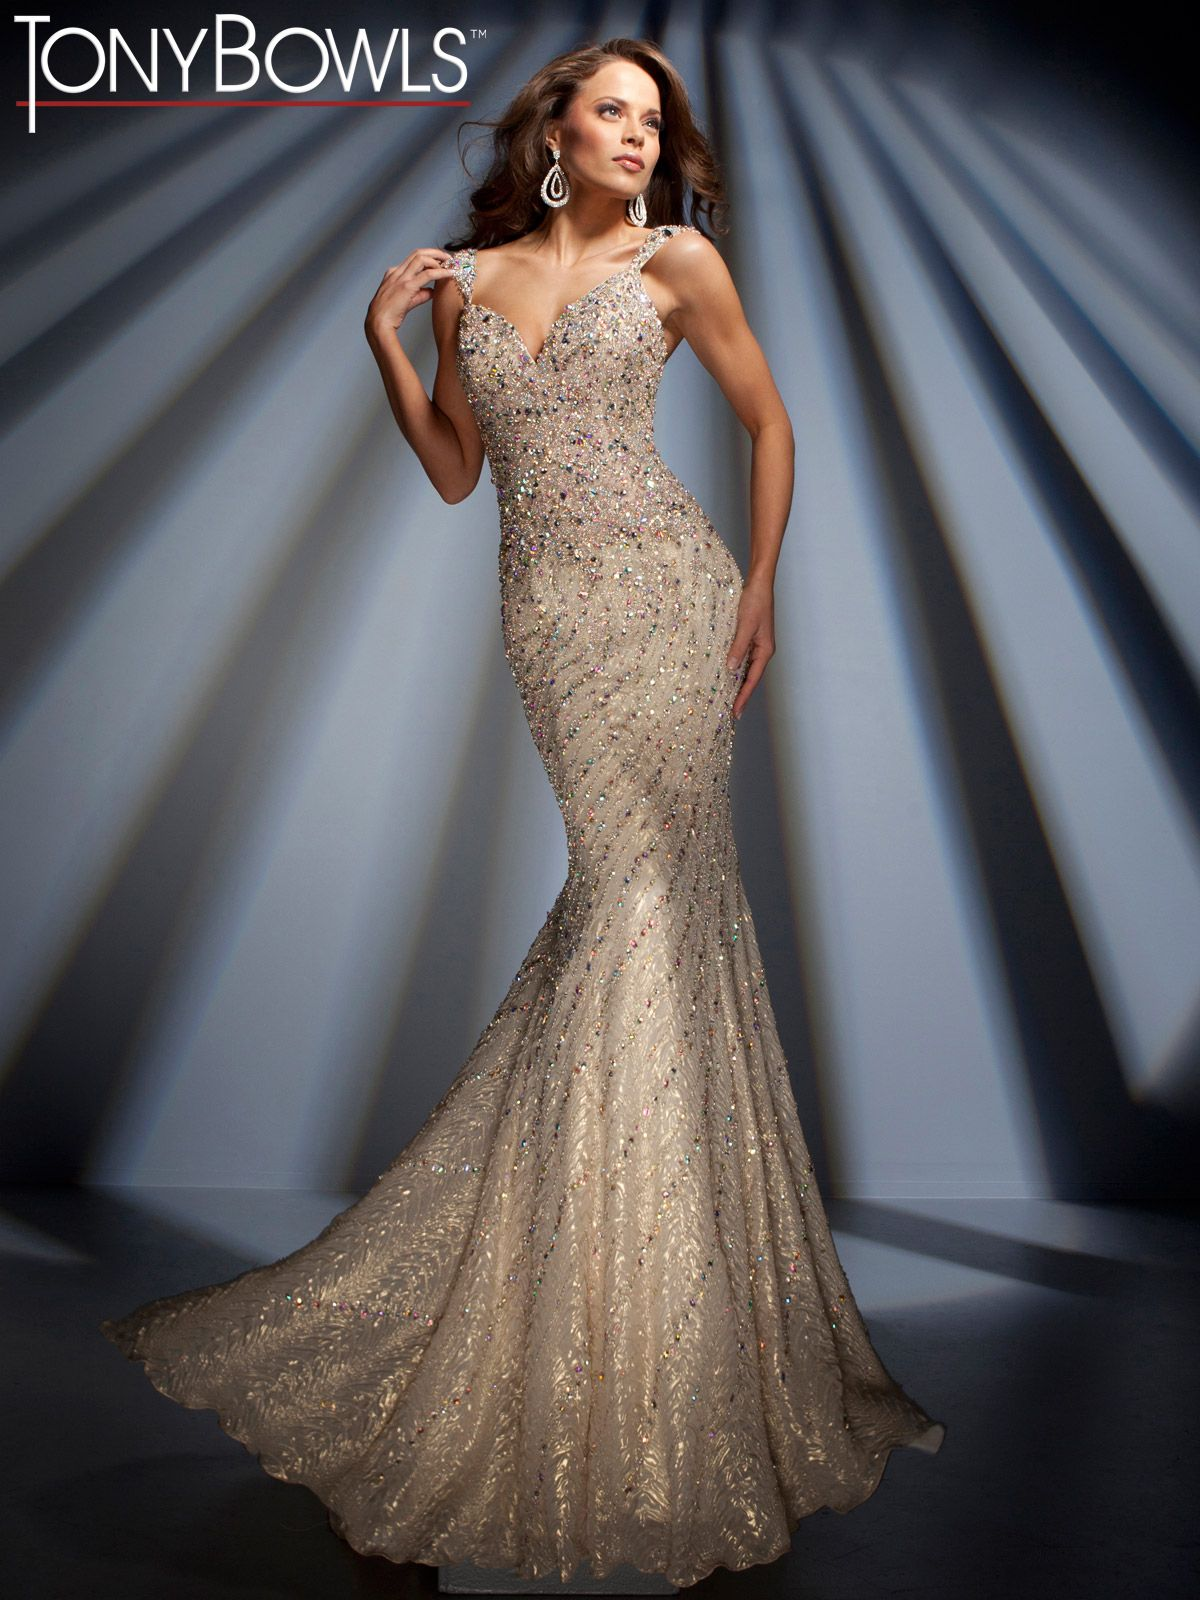 Long Formal Mermaid Dress In Beige With Swirls Of Rhinestone Sequins From Tony Bowls